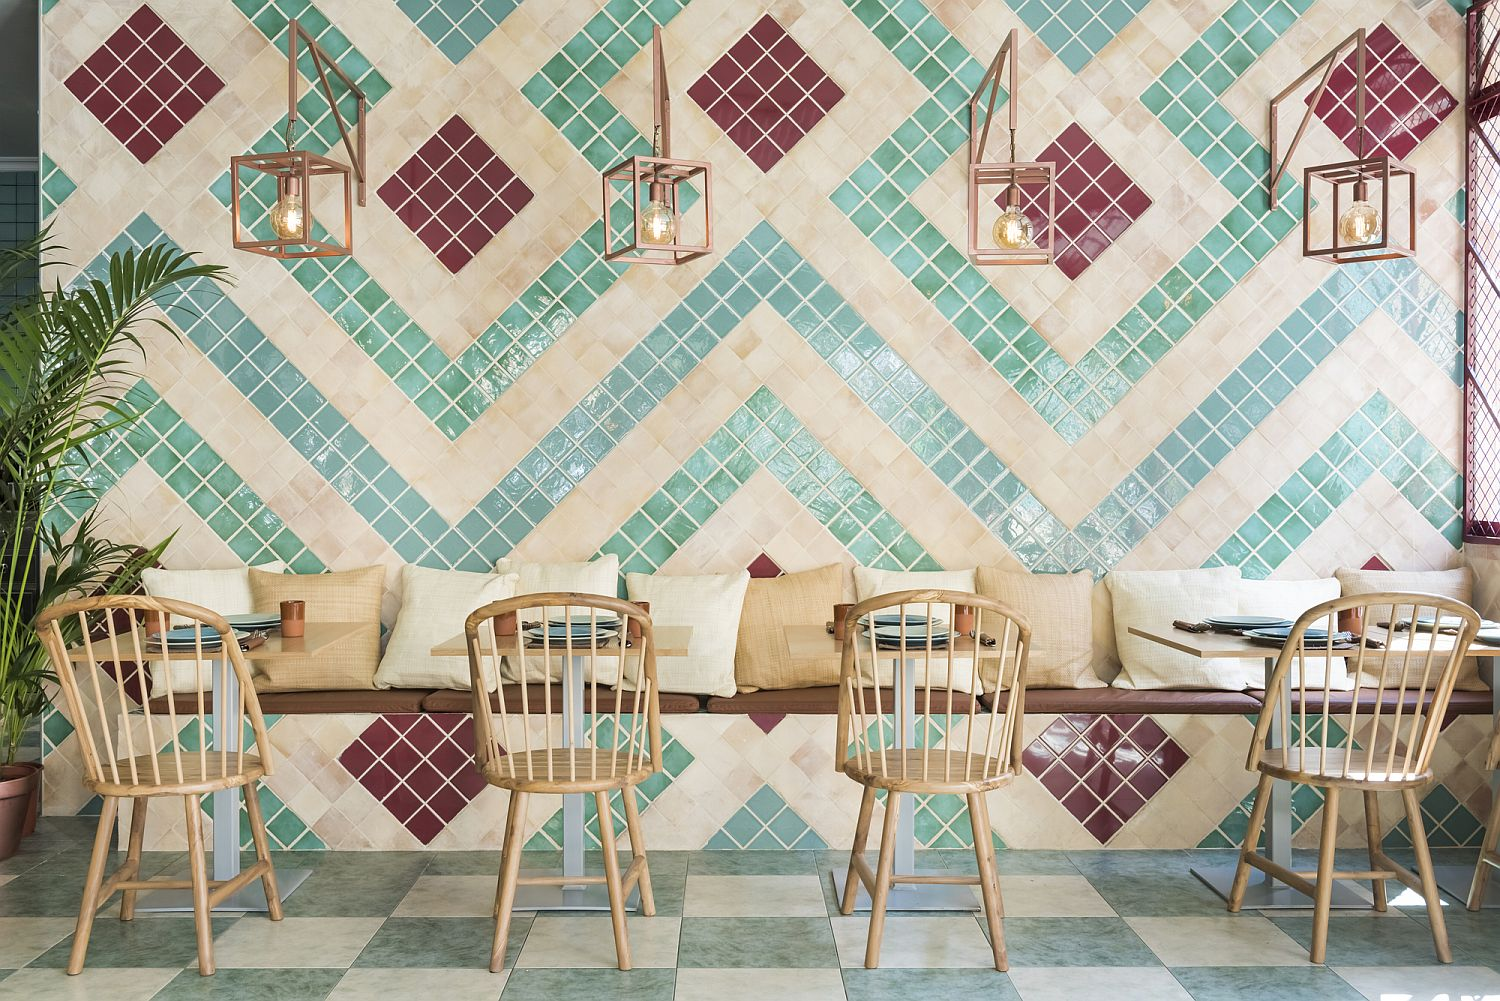 Chairs and custom decor made from olive wood add to the Andalusian flavor of the pizzeria